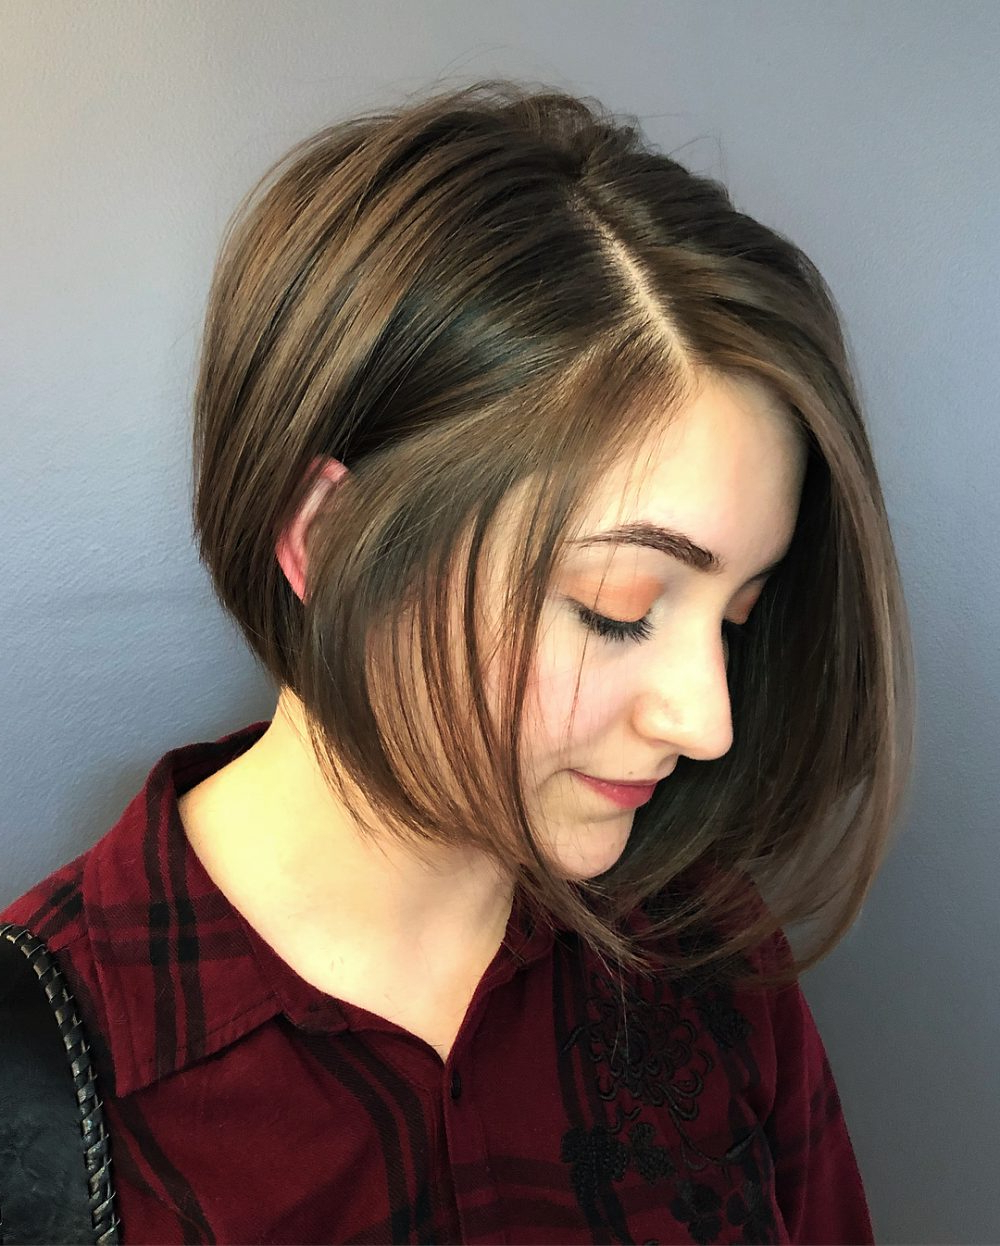 34 Most Flattering Short Hairstyles For Round Faces Within Layered Short Hairstyles For Round Faces (View 2 of 20)